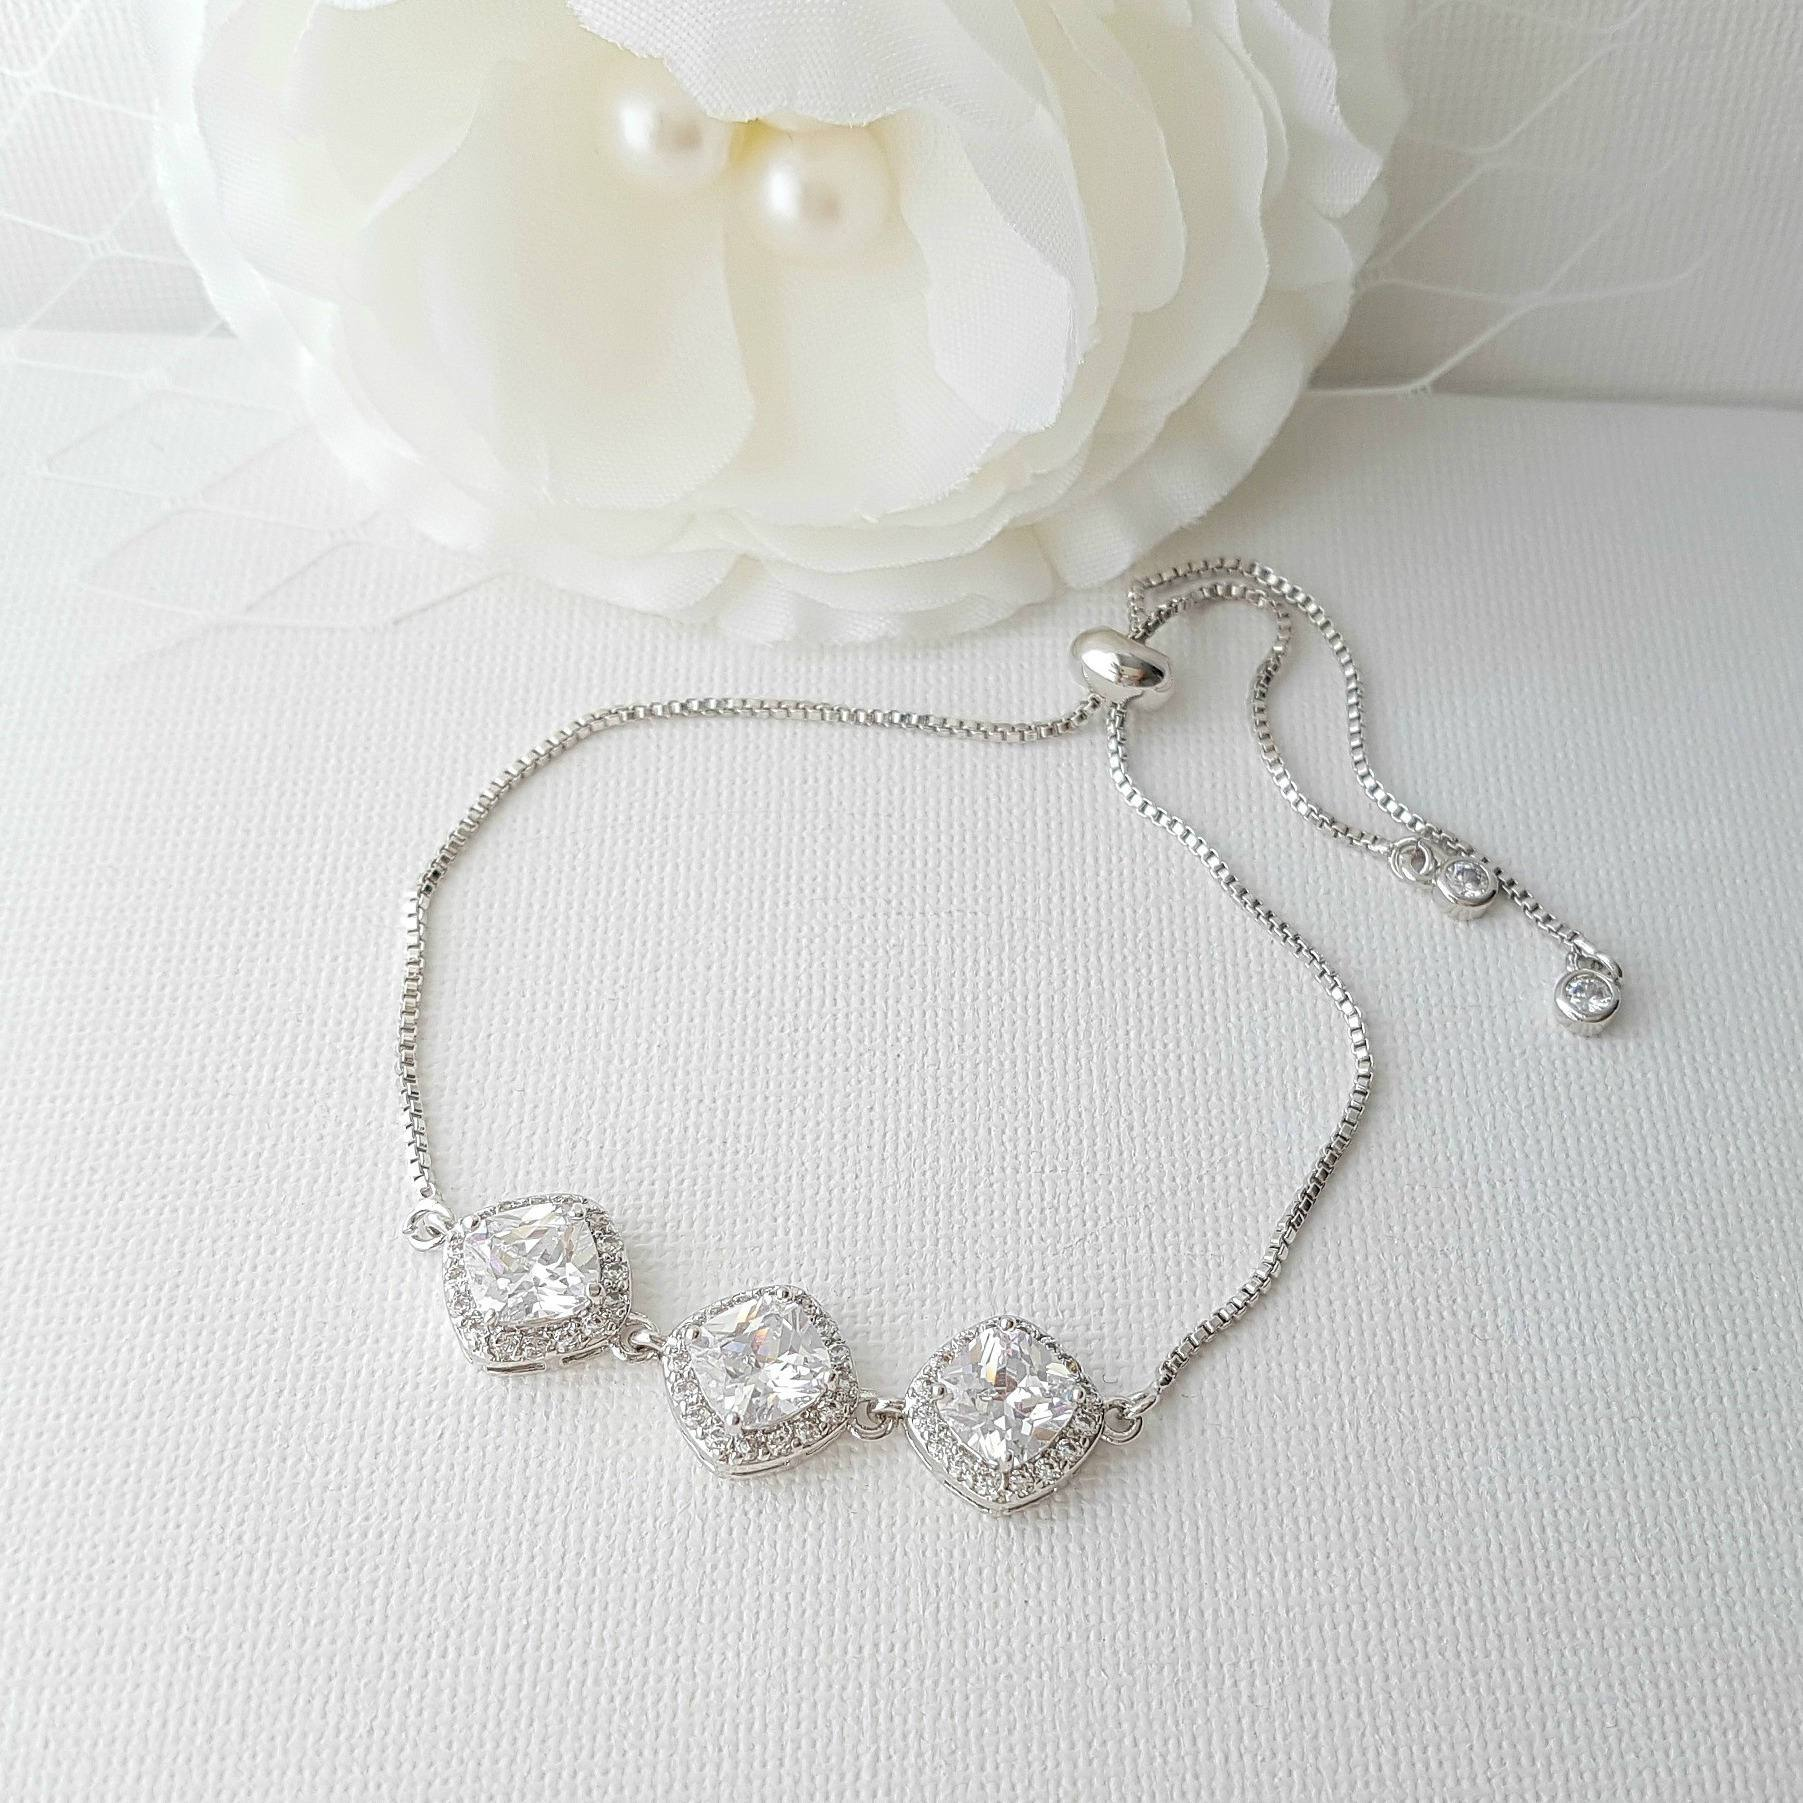 Crystal Wedding Bracelet, Bridal Bracelet, Adjustable Bracelet, Cubic Zirconia Bracelet, Cushion Cut Crystal, Bridal Jewelry, Celia Bracelet